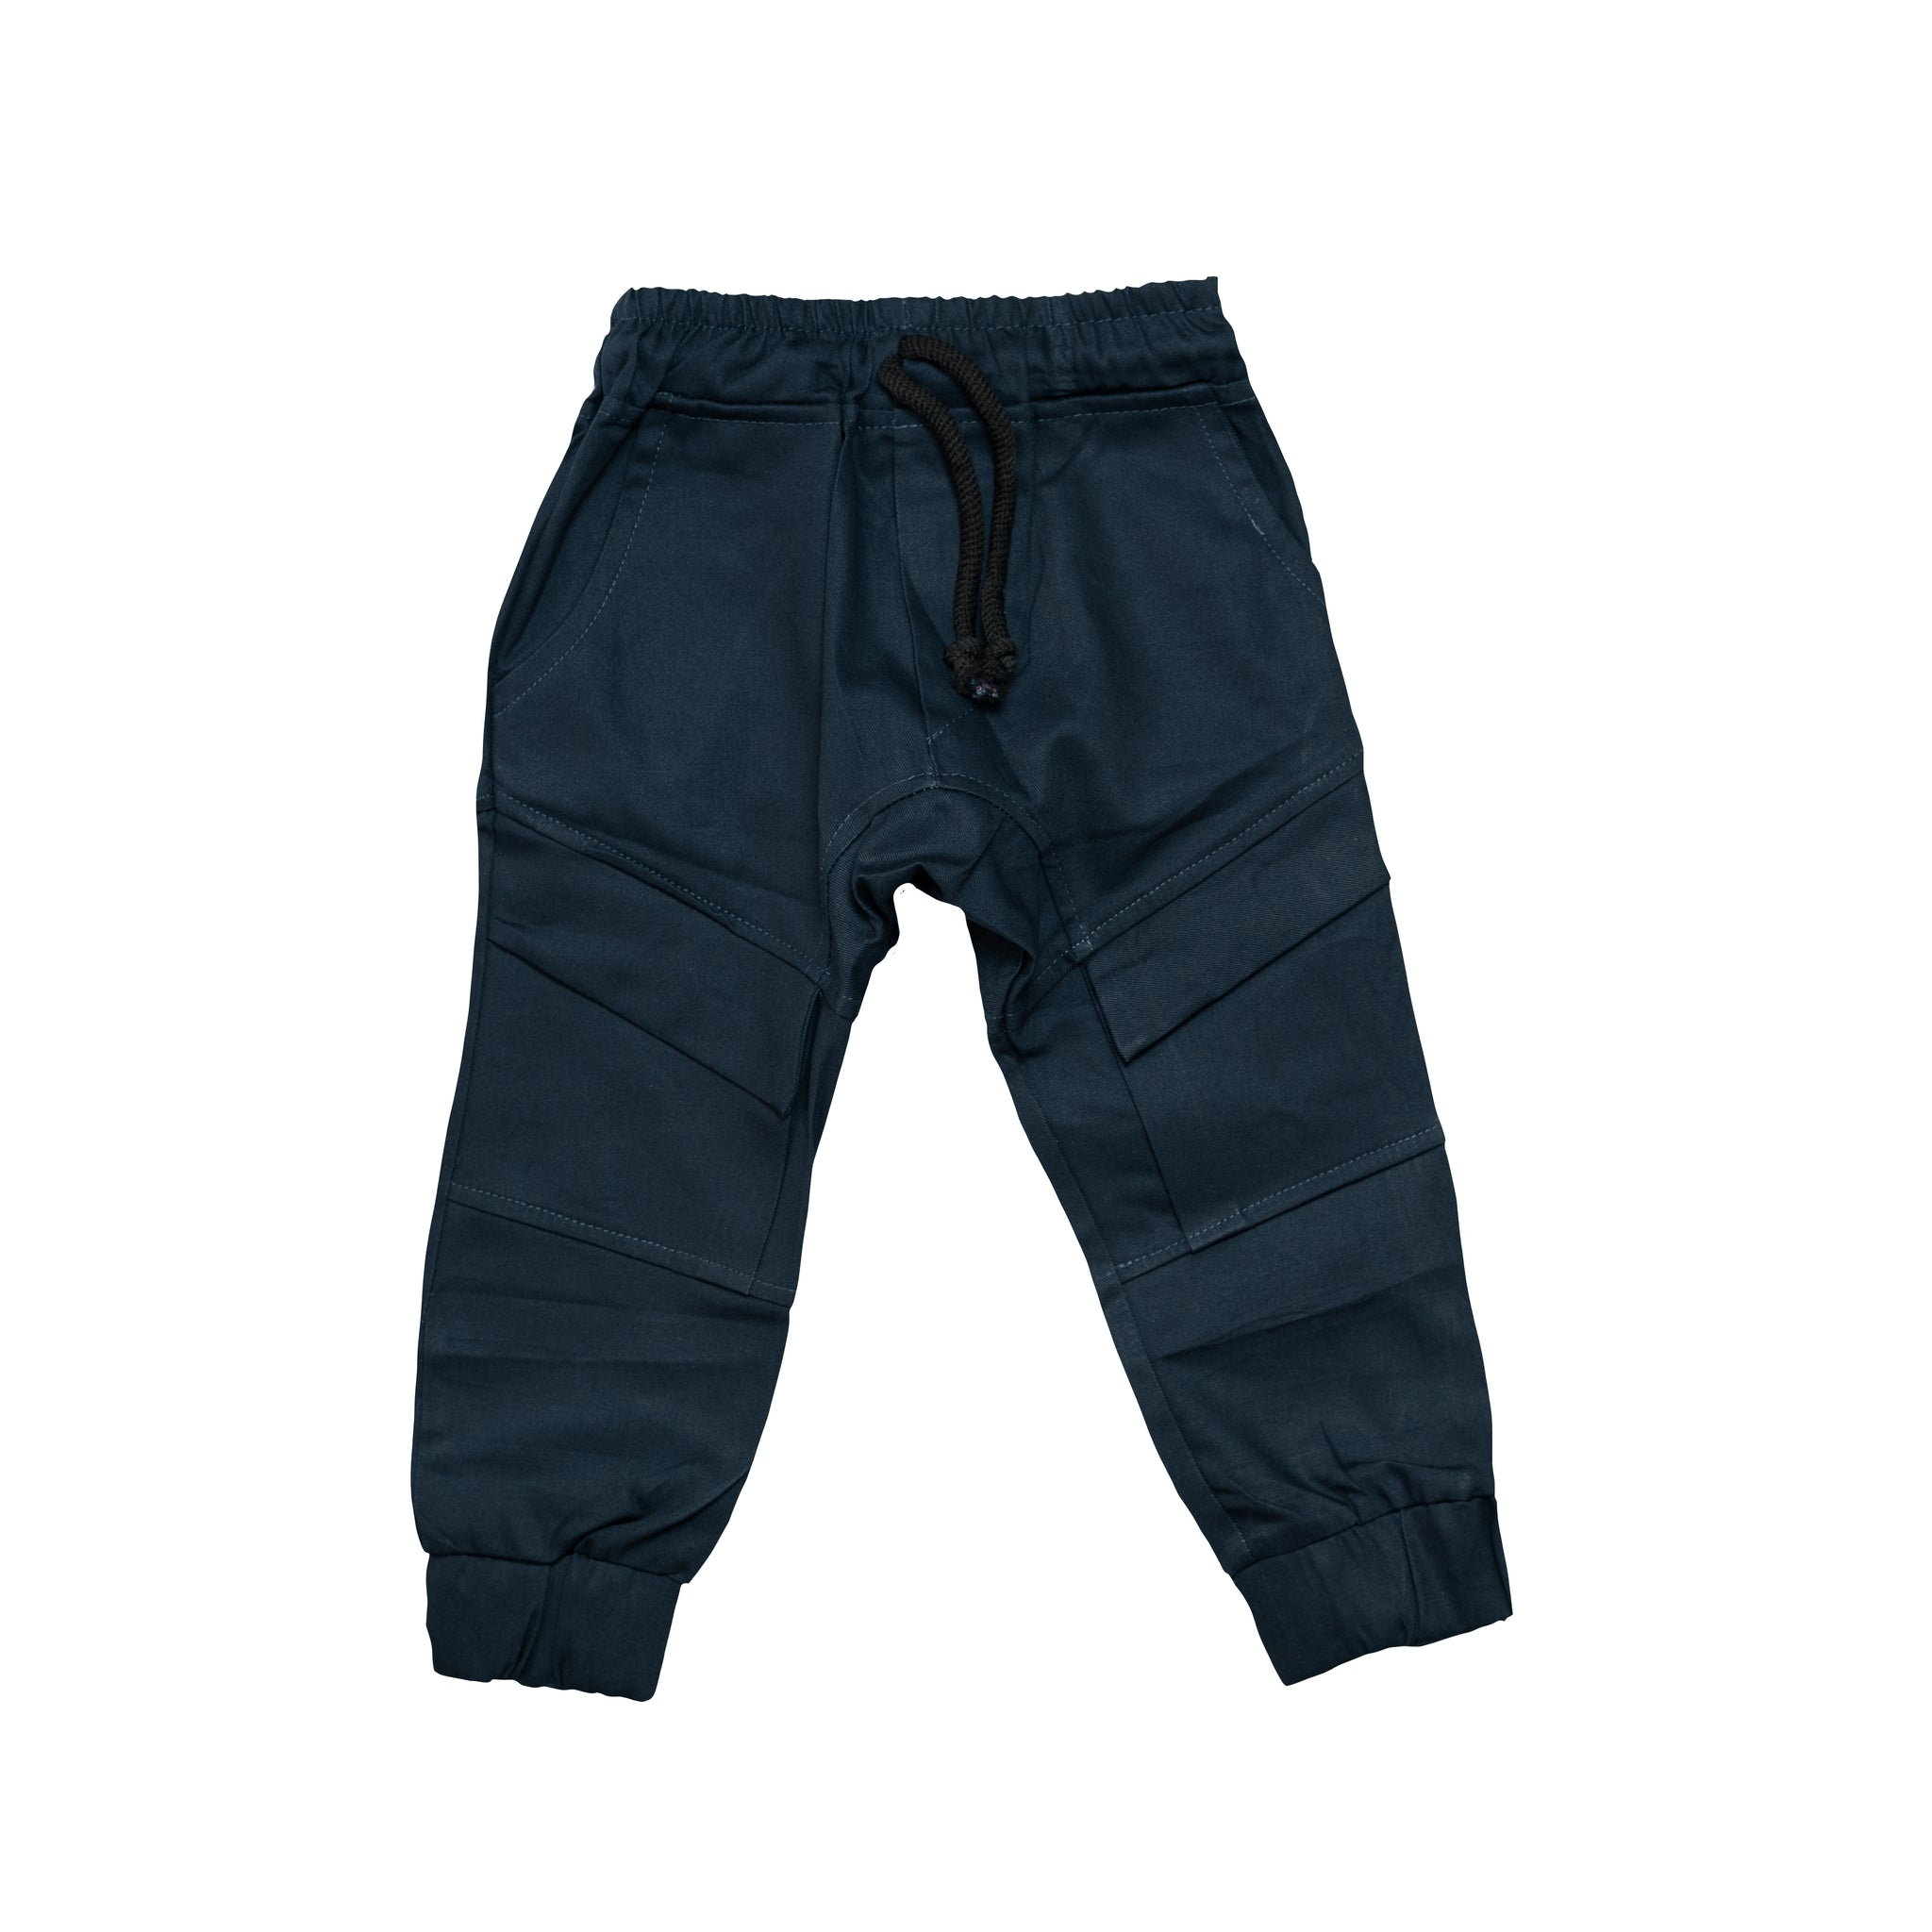 Cuffed Chino Pants - Navy